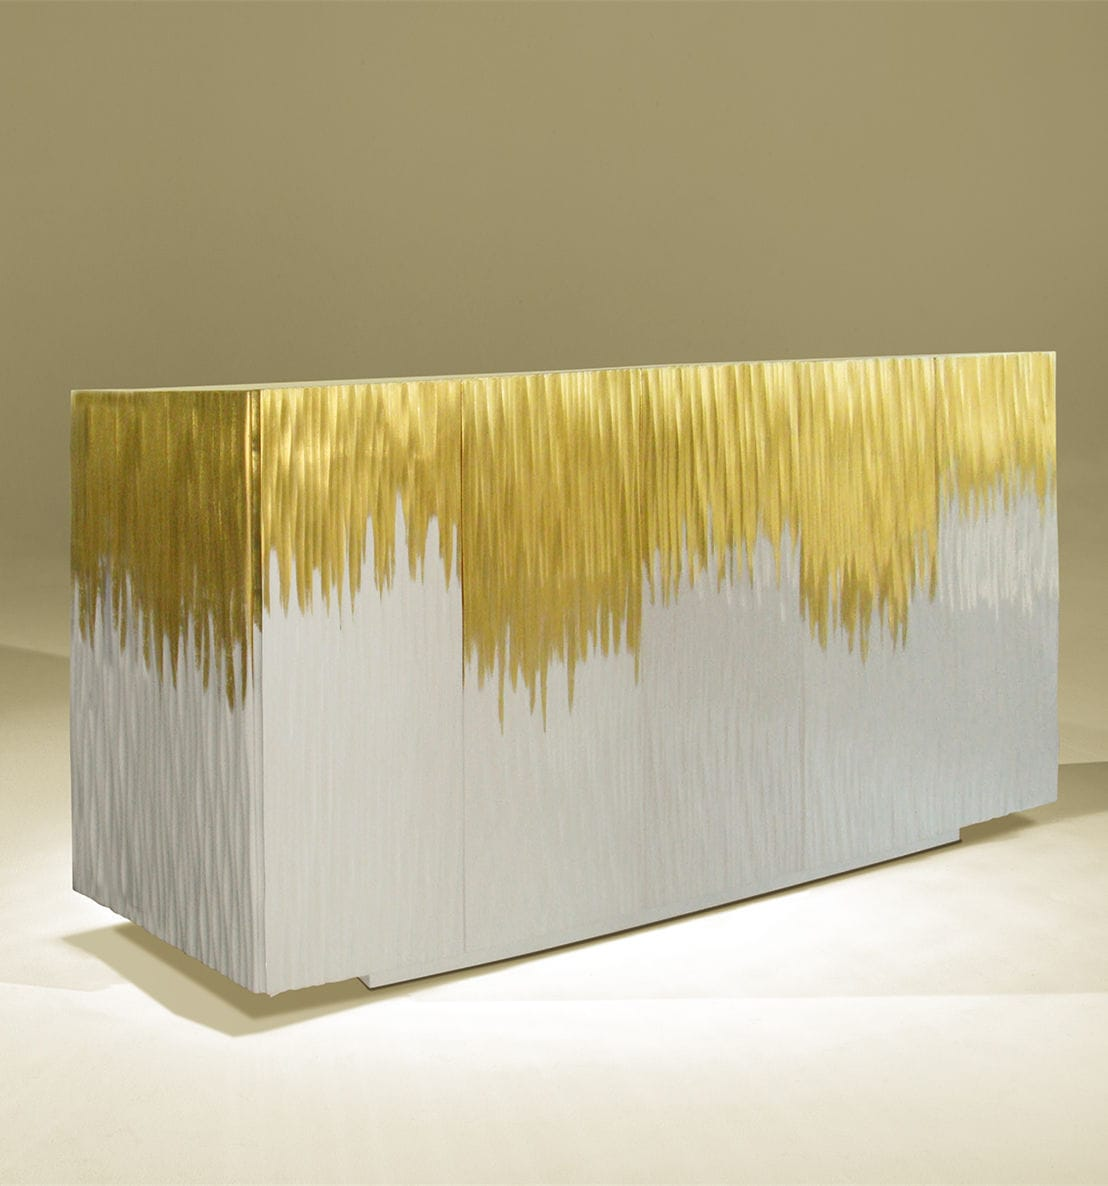 Modernes Sideboard Lackiertes Holz Weiss Golden Moon Gold